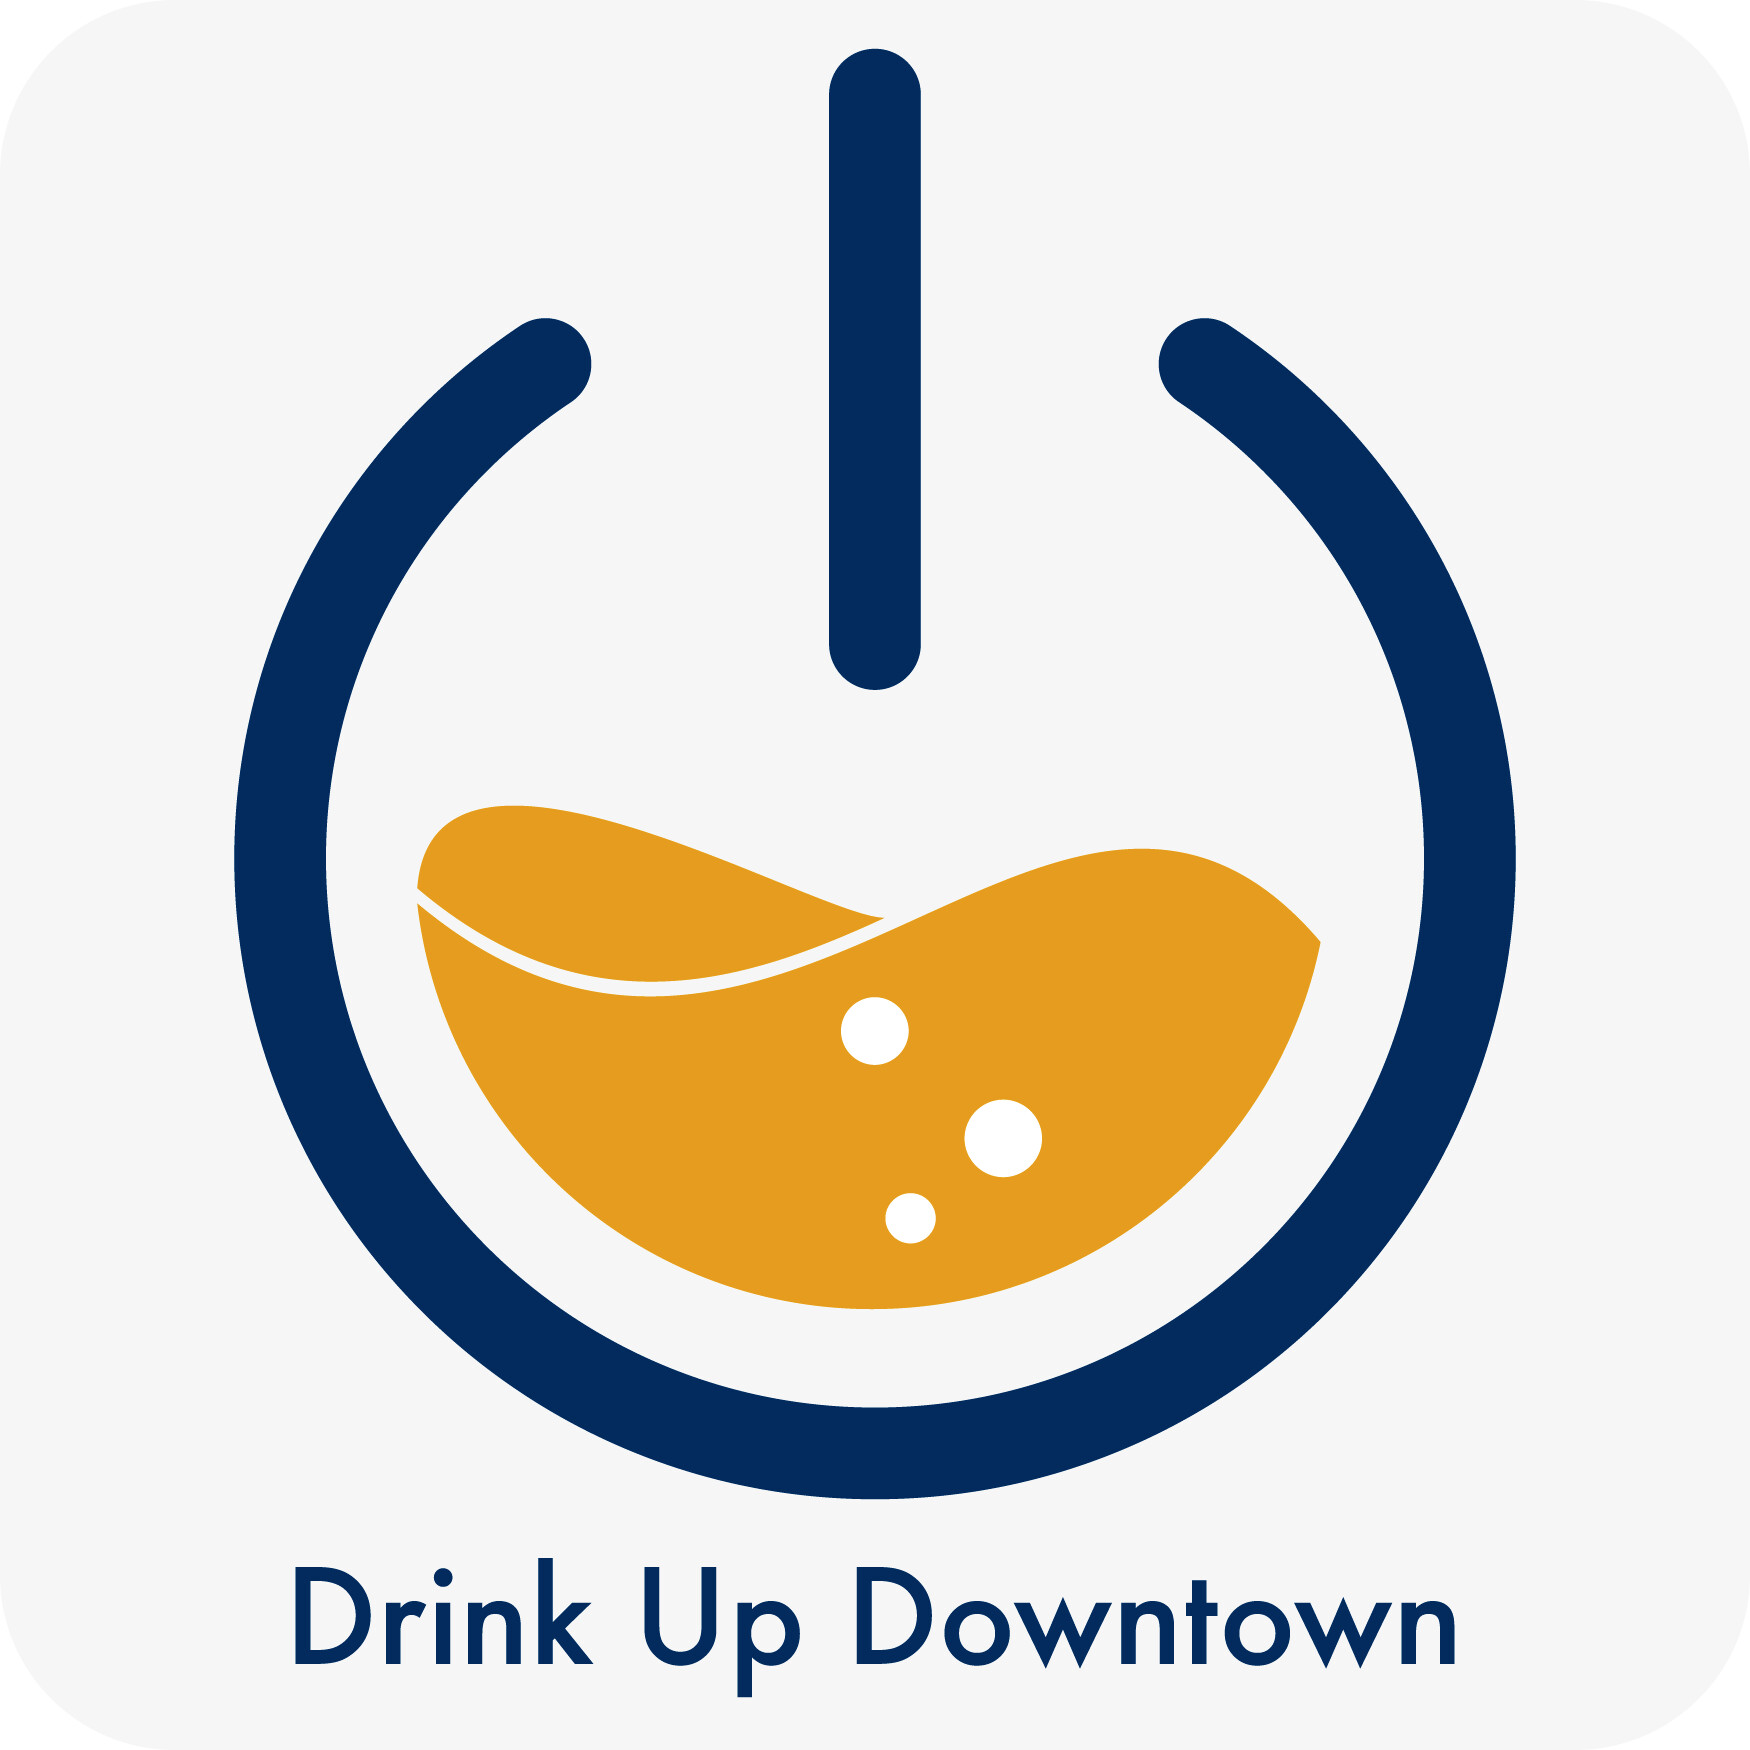 Drink Up Downtown